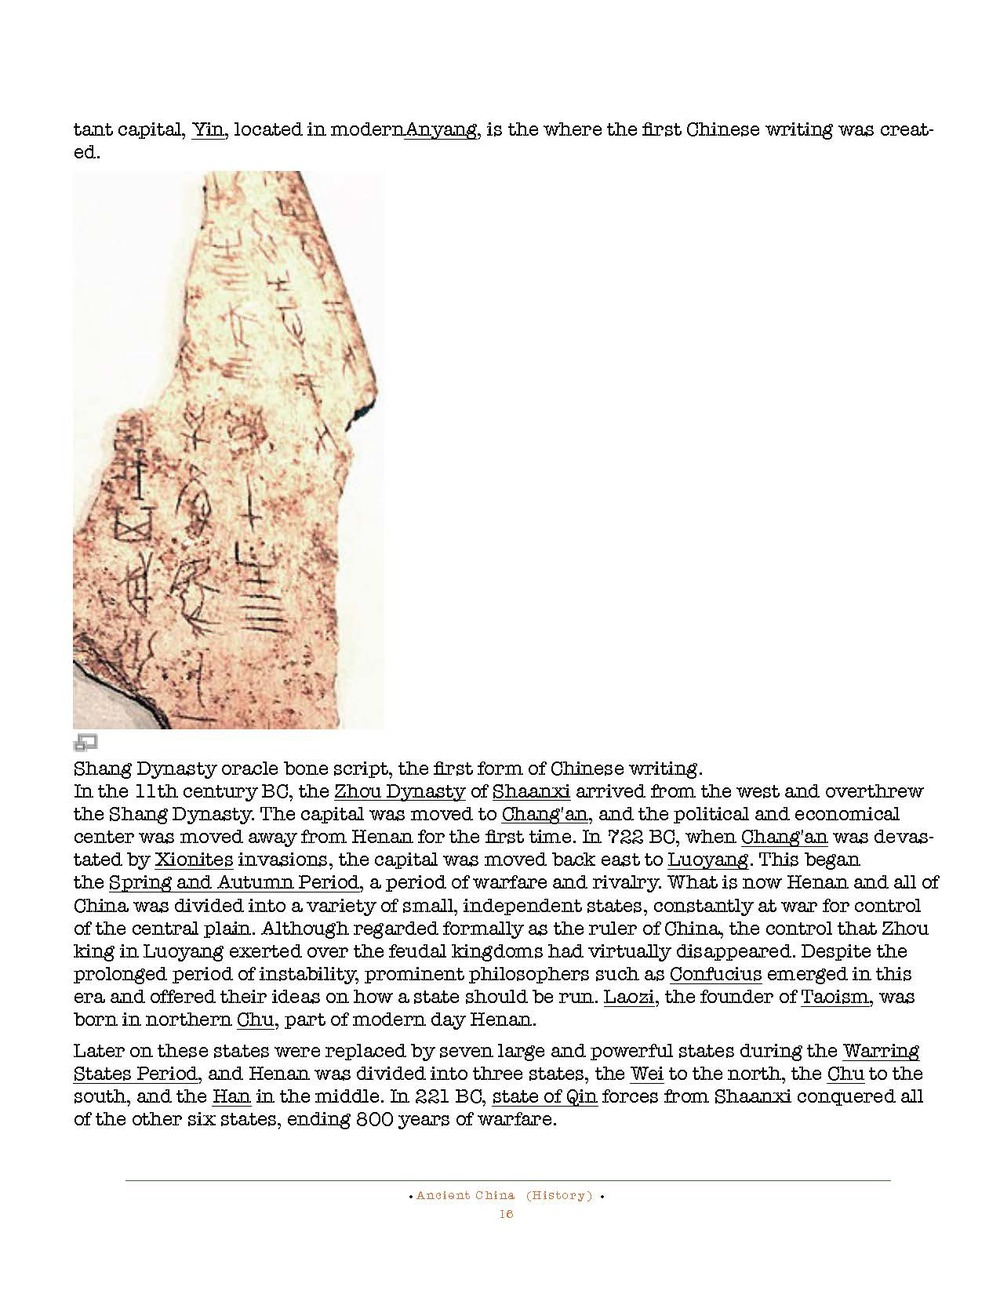 HOCE- Ancient China Notes_Page_016.jpg